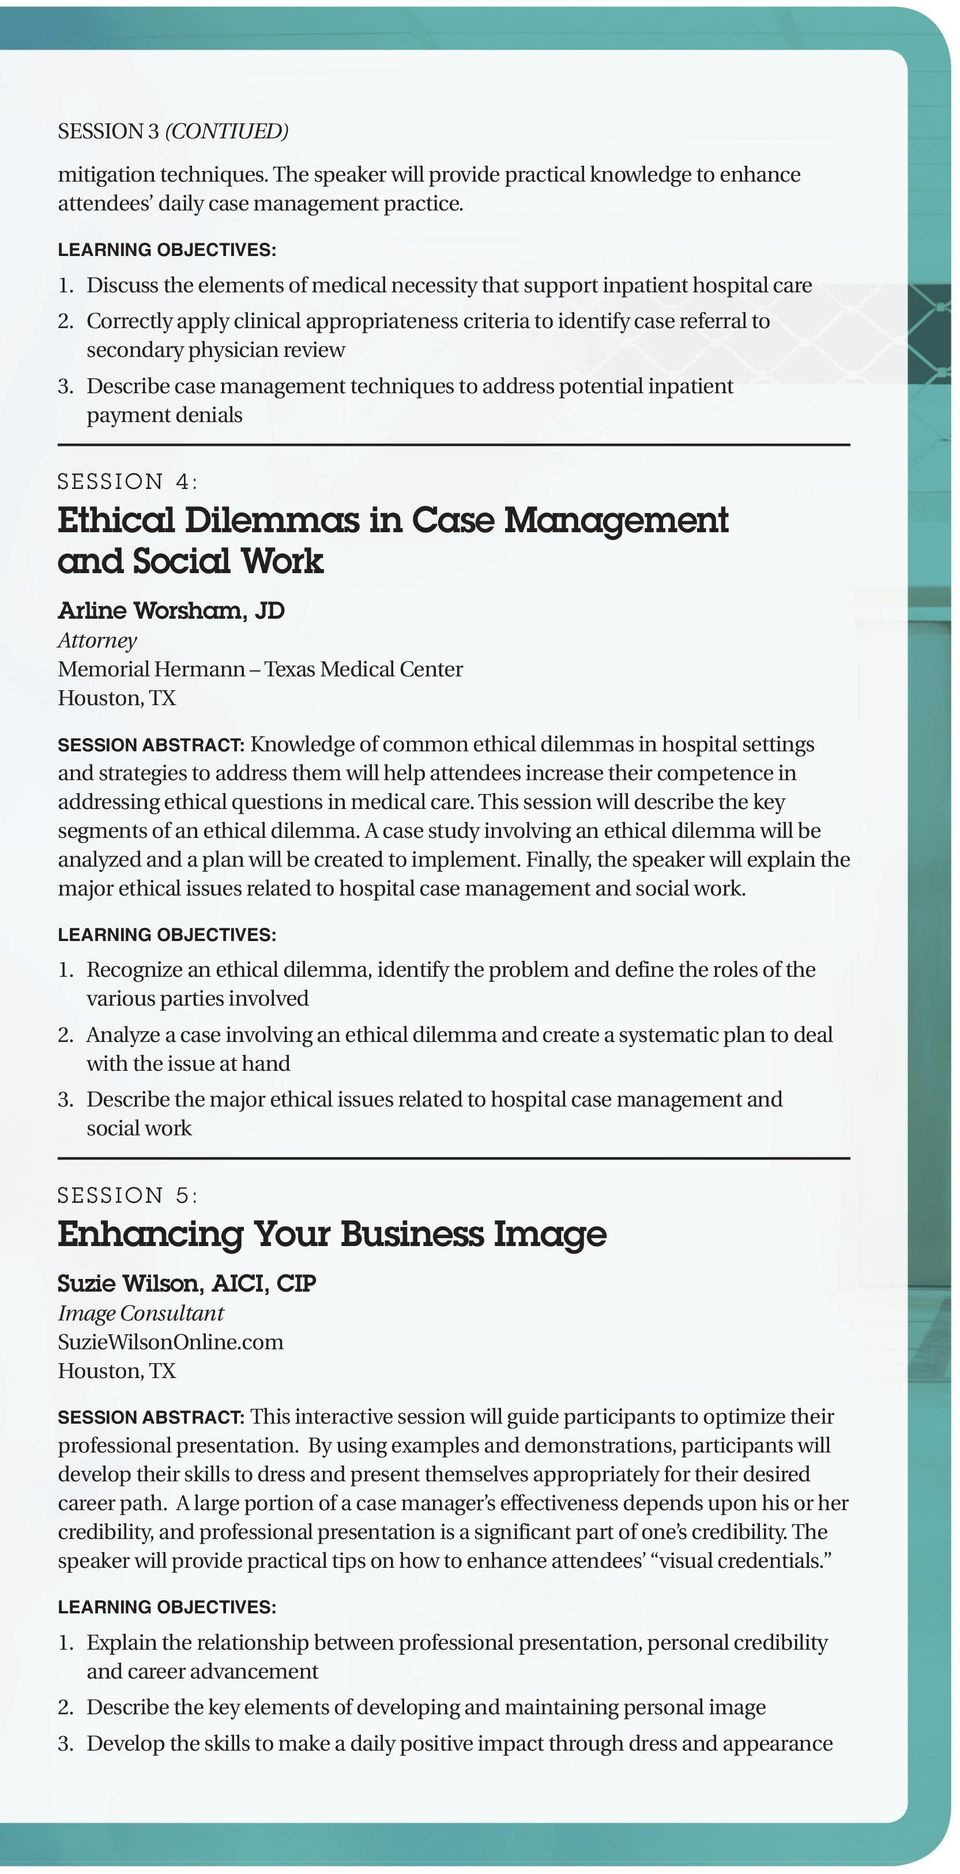 Describe case management techniques to address potential inpatient payment denials SESSION 4: Ethical Dilemmas in and Social Work Arline Worsham, JD Attorney Memorial Hermann Texas Medical Center